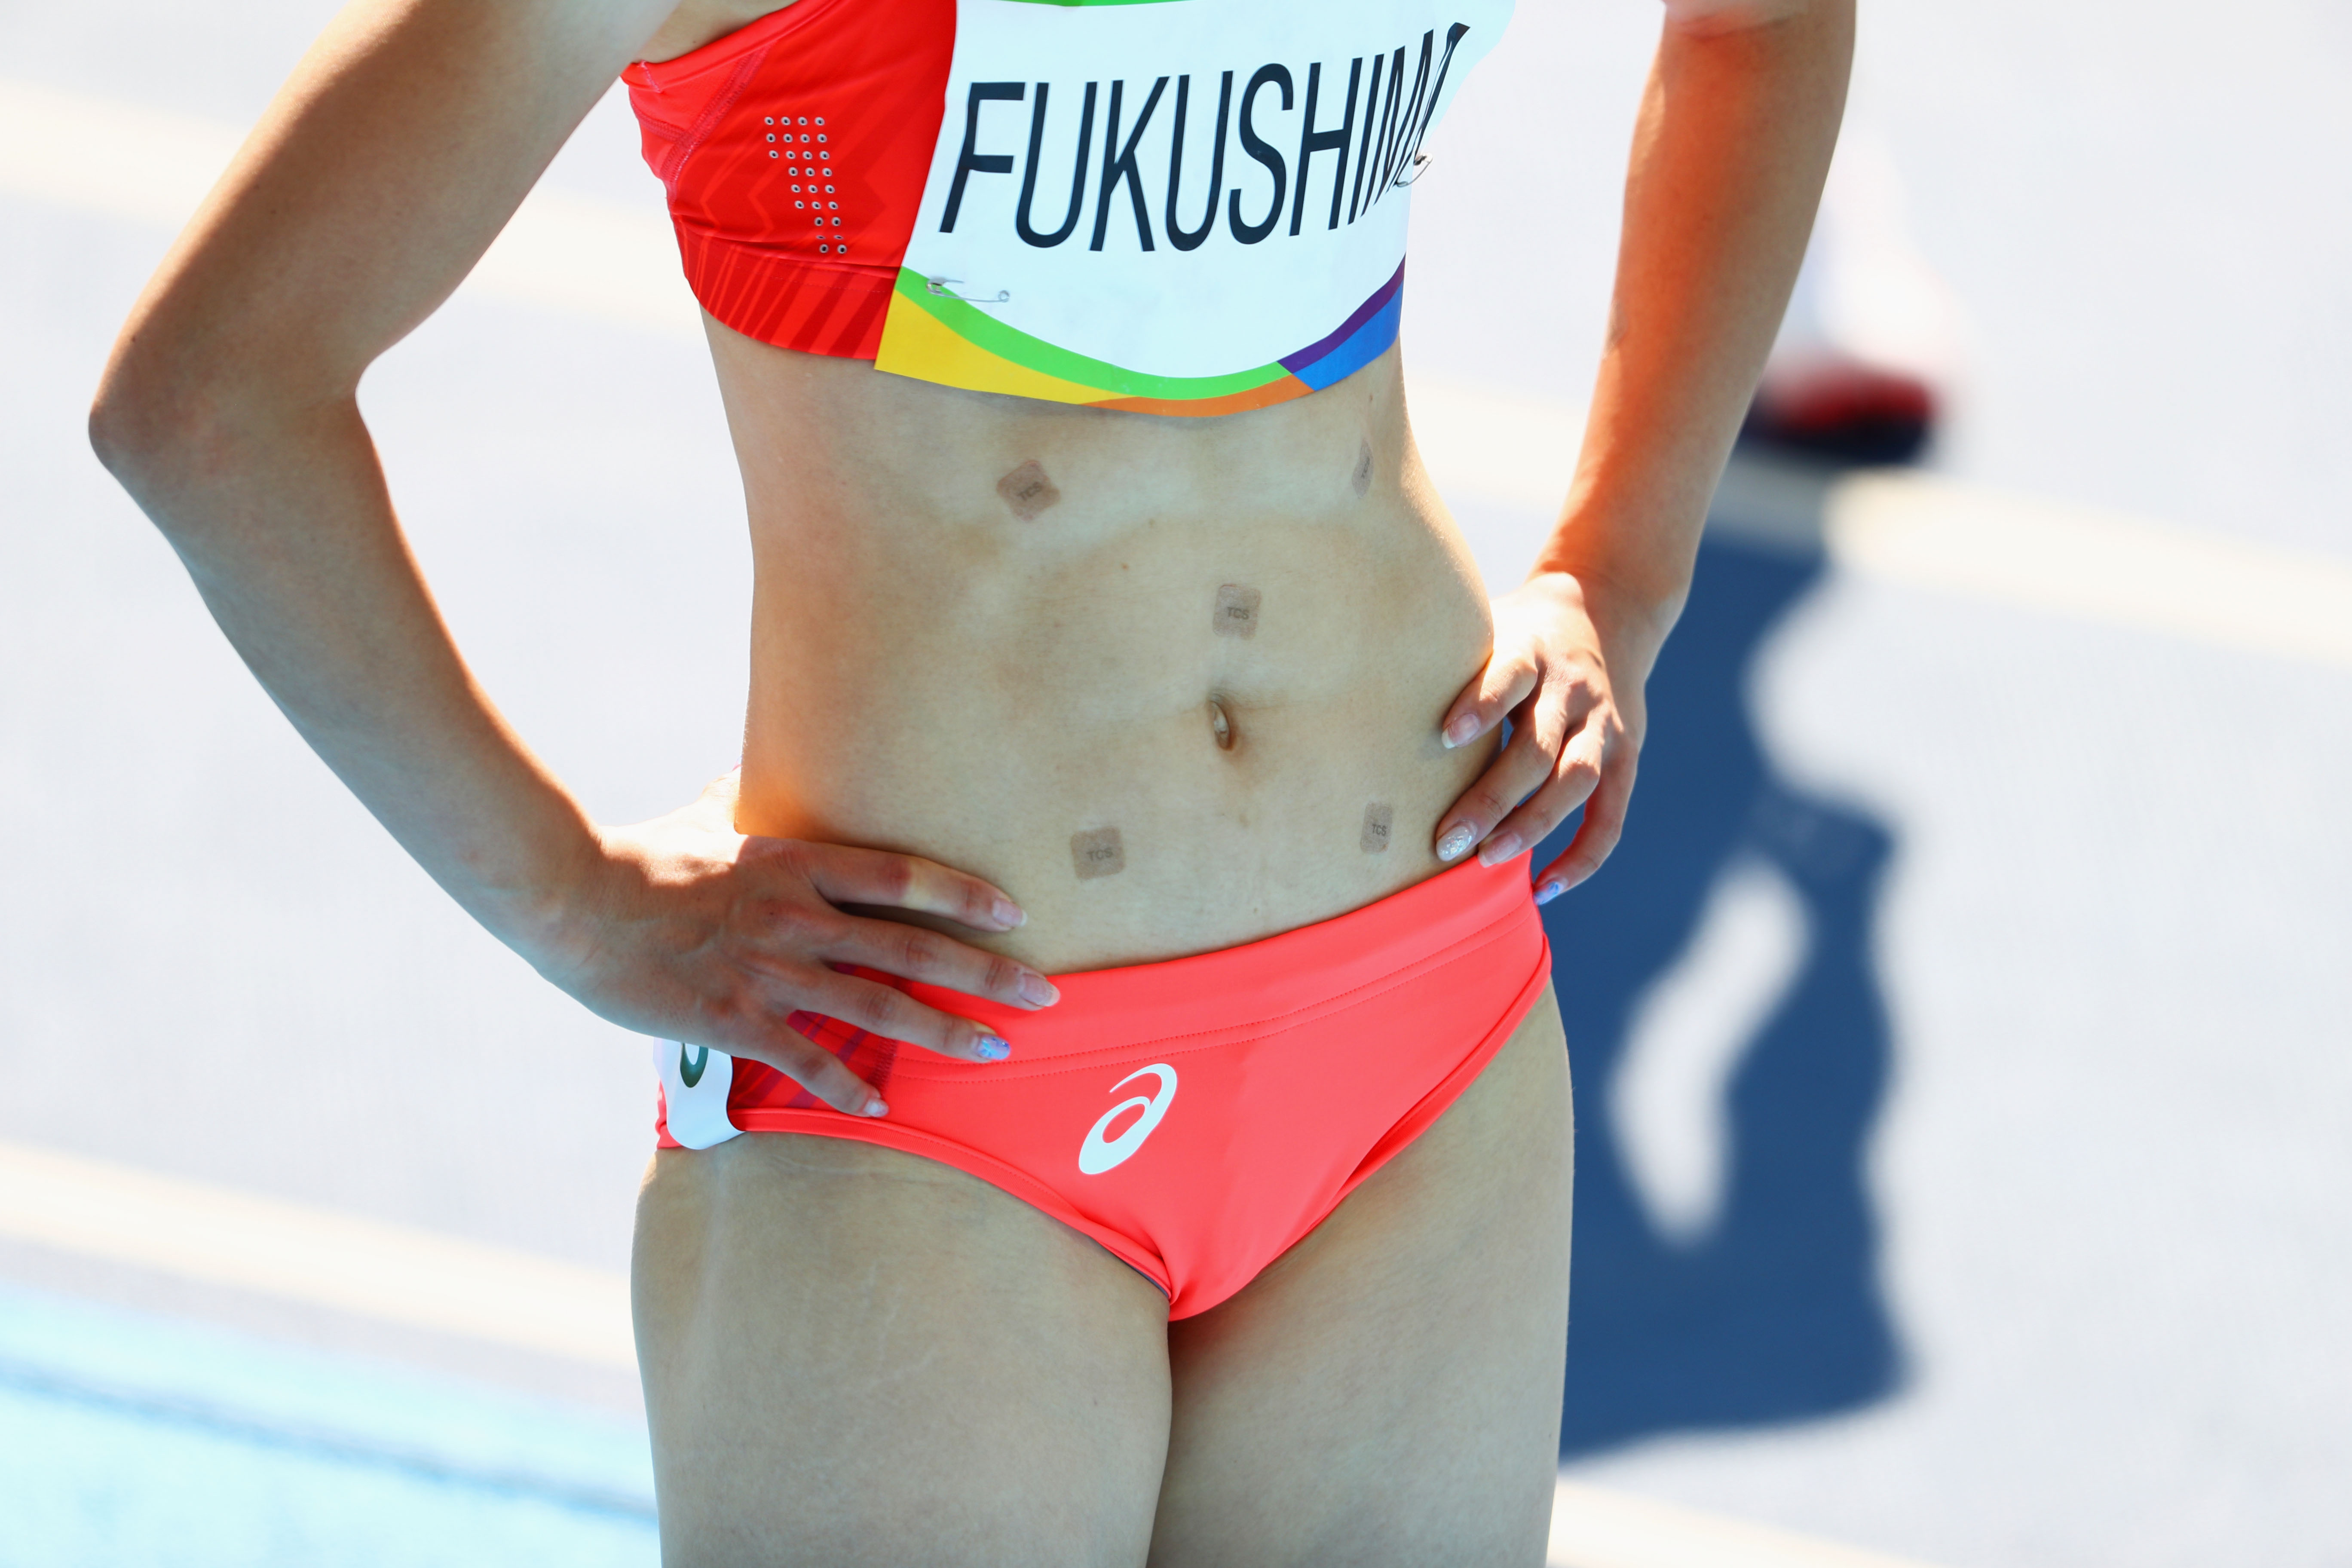 Heres Why Japans Chisato Fukushima Wore Patches While Running In Rio GettyImages 589707276